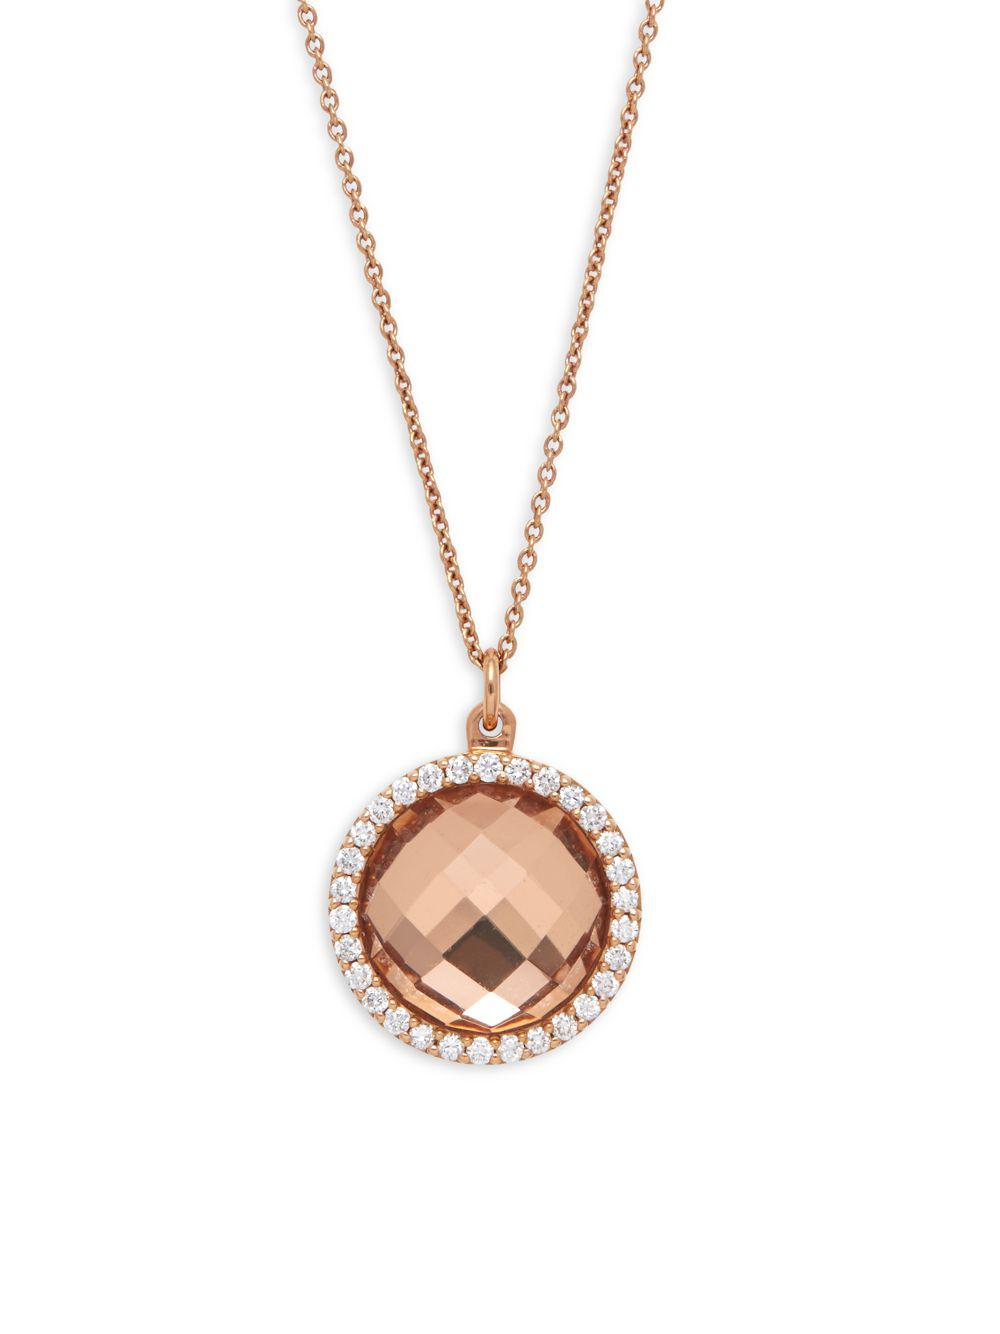 Roberto Coin 18k Rose Gold Crystal & Diamond Pendant Necklace